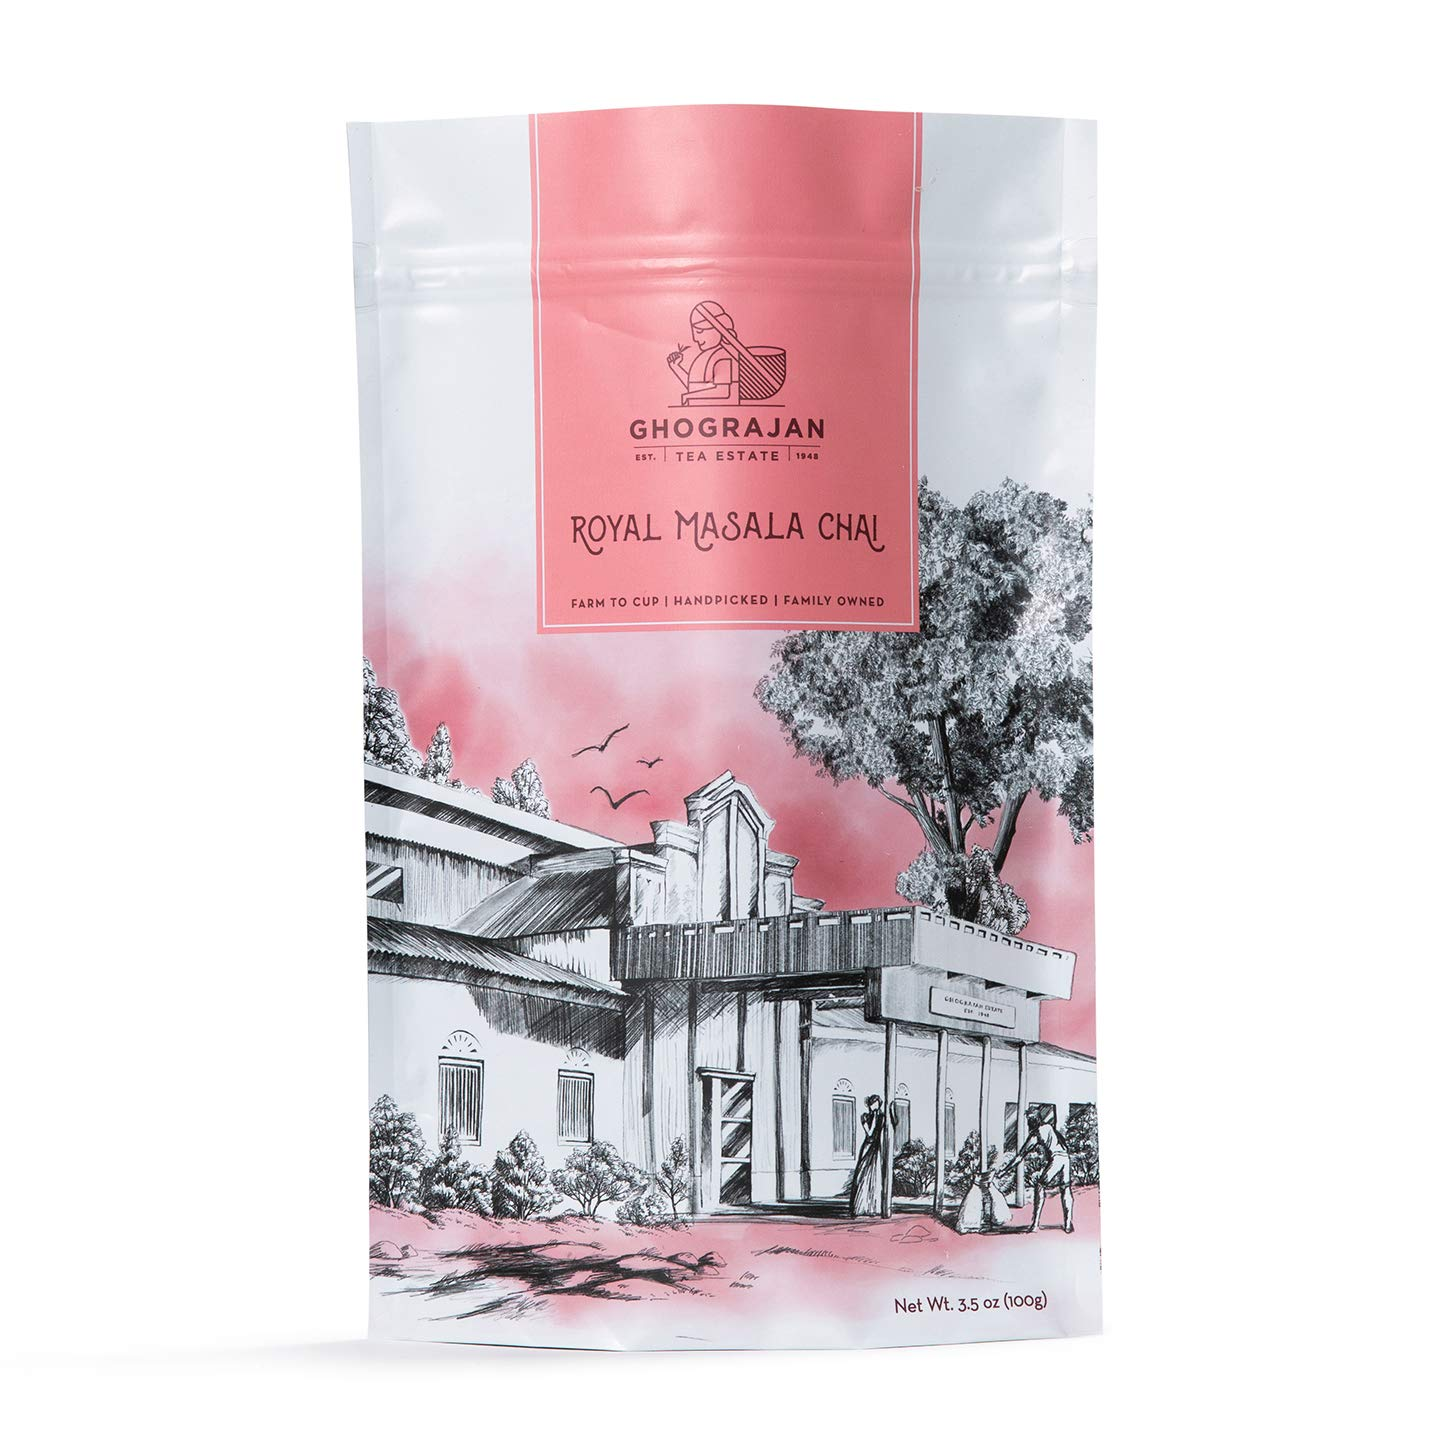 Chai Tea Loose Leaf (50+ Cups) - Fresh Organic Harvest - Finest Assam CTC Blended with Organic Cardamom, Ginger, Cloves and Cinnamon - Shipped Directly from Our 5th Generation Tea Estate in India